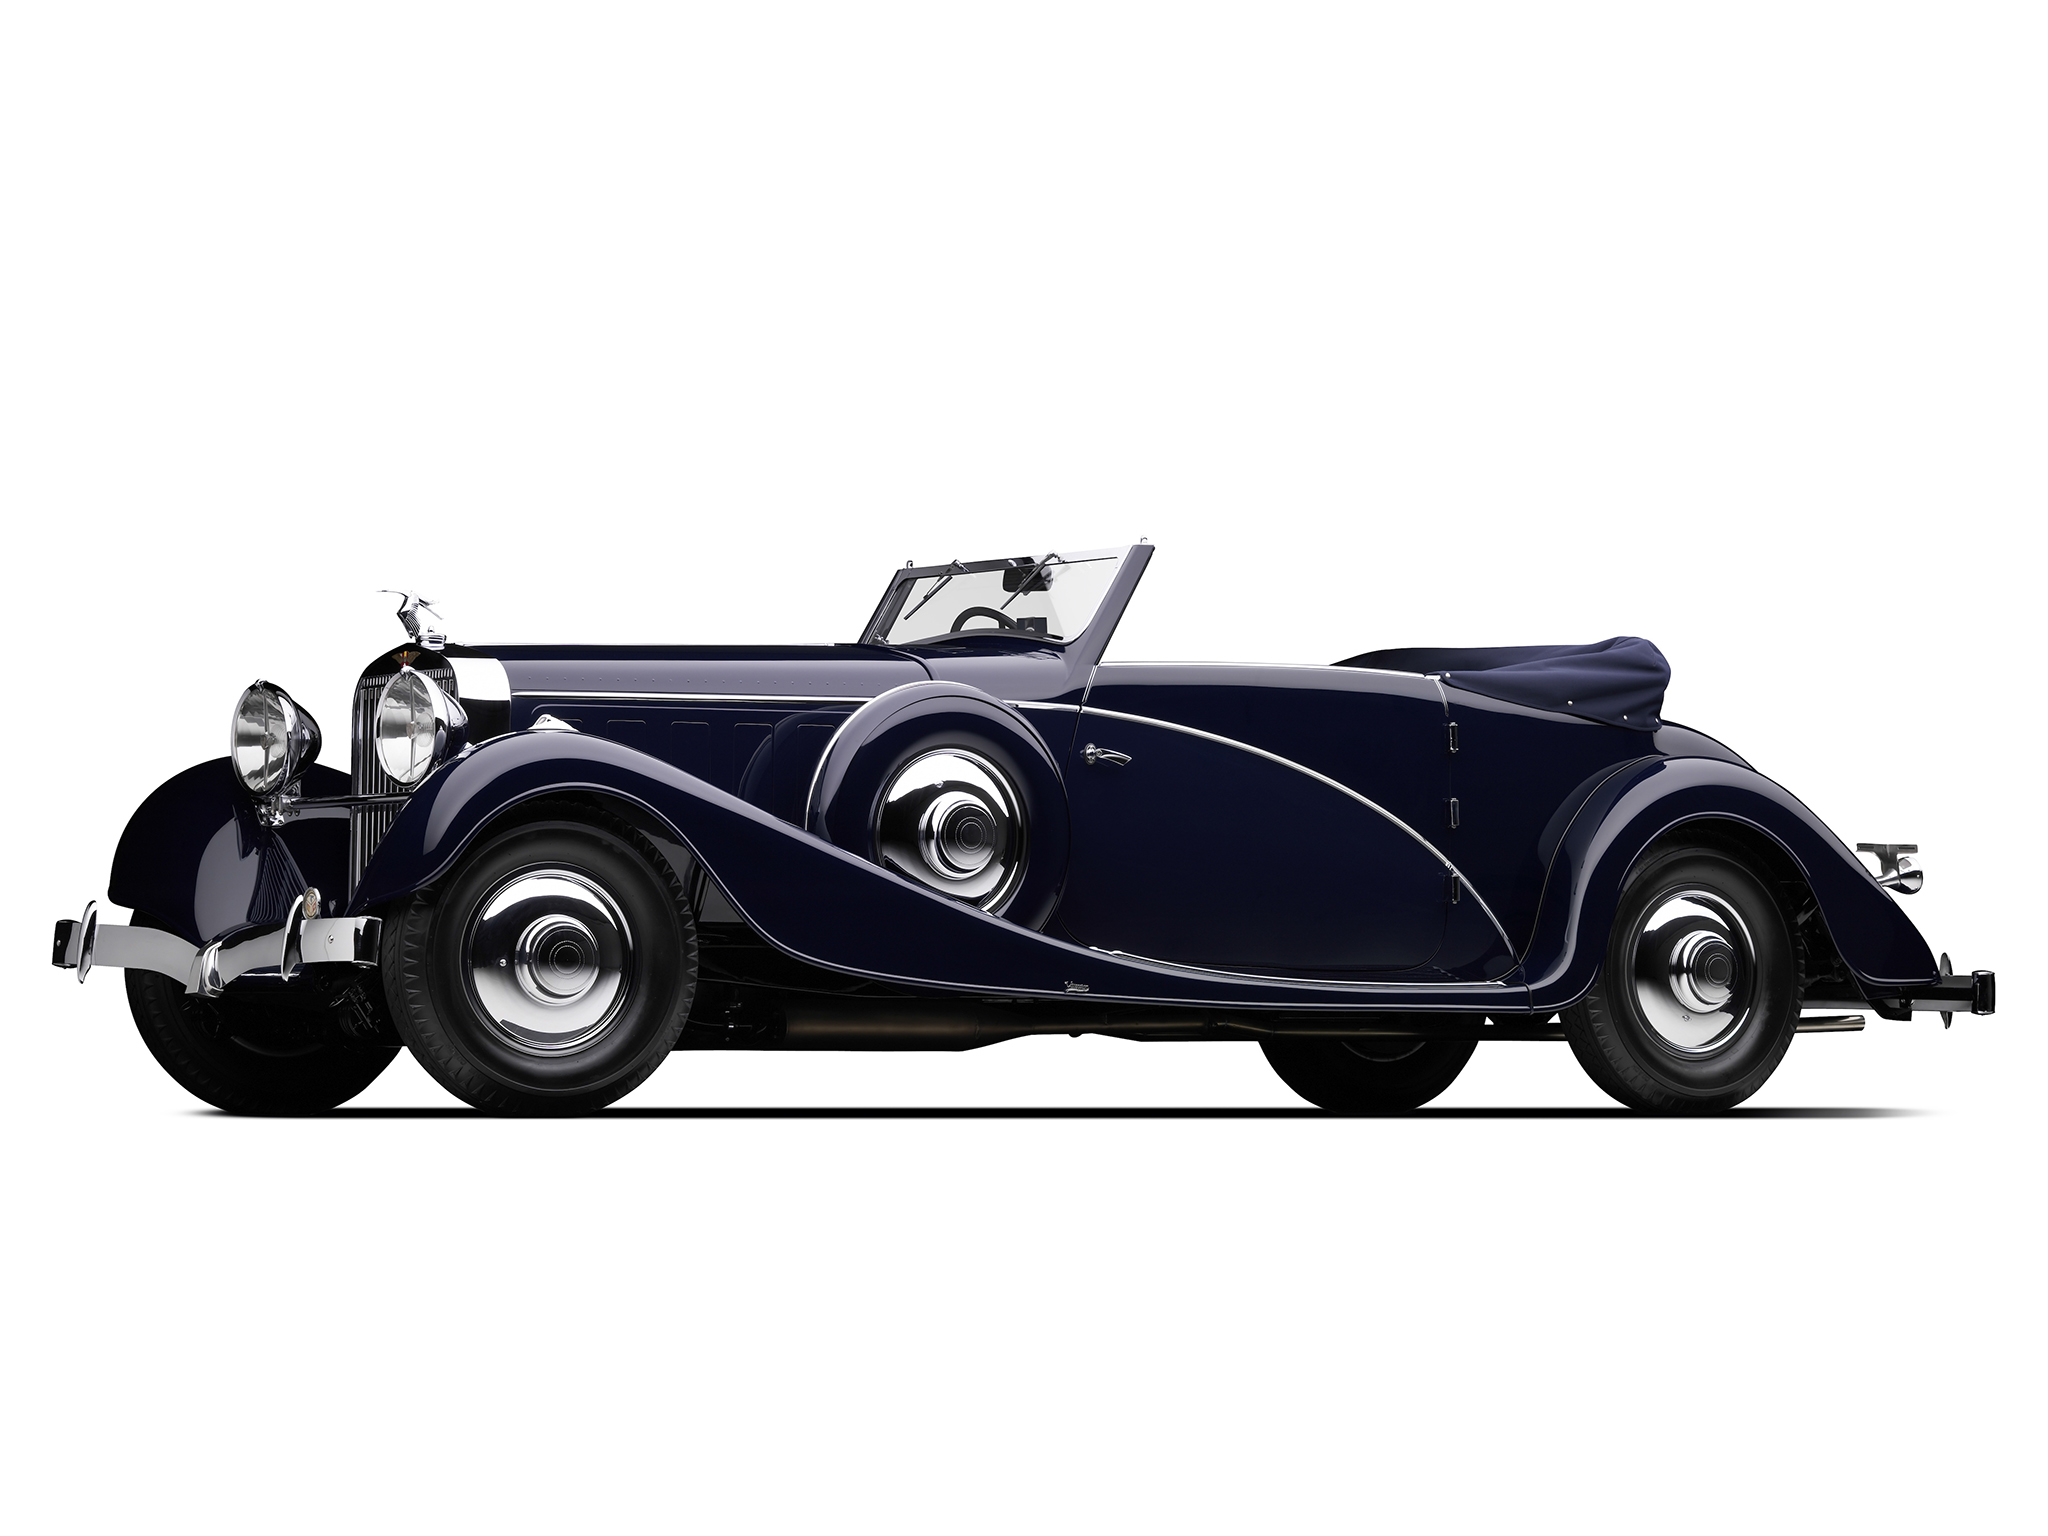 Hispano suiza j12 photo - 3